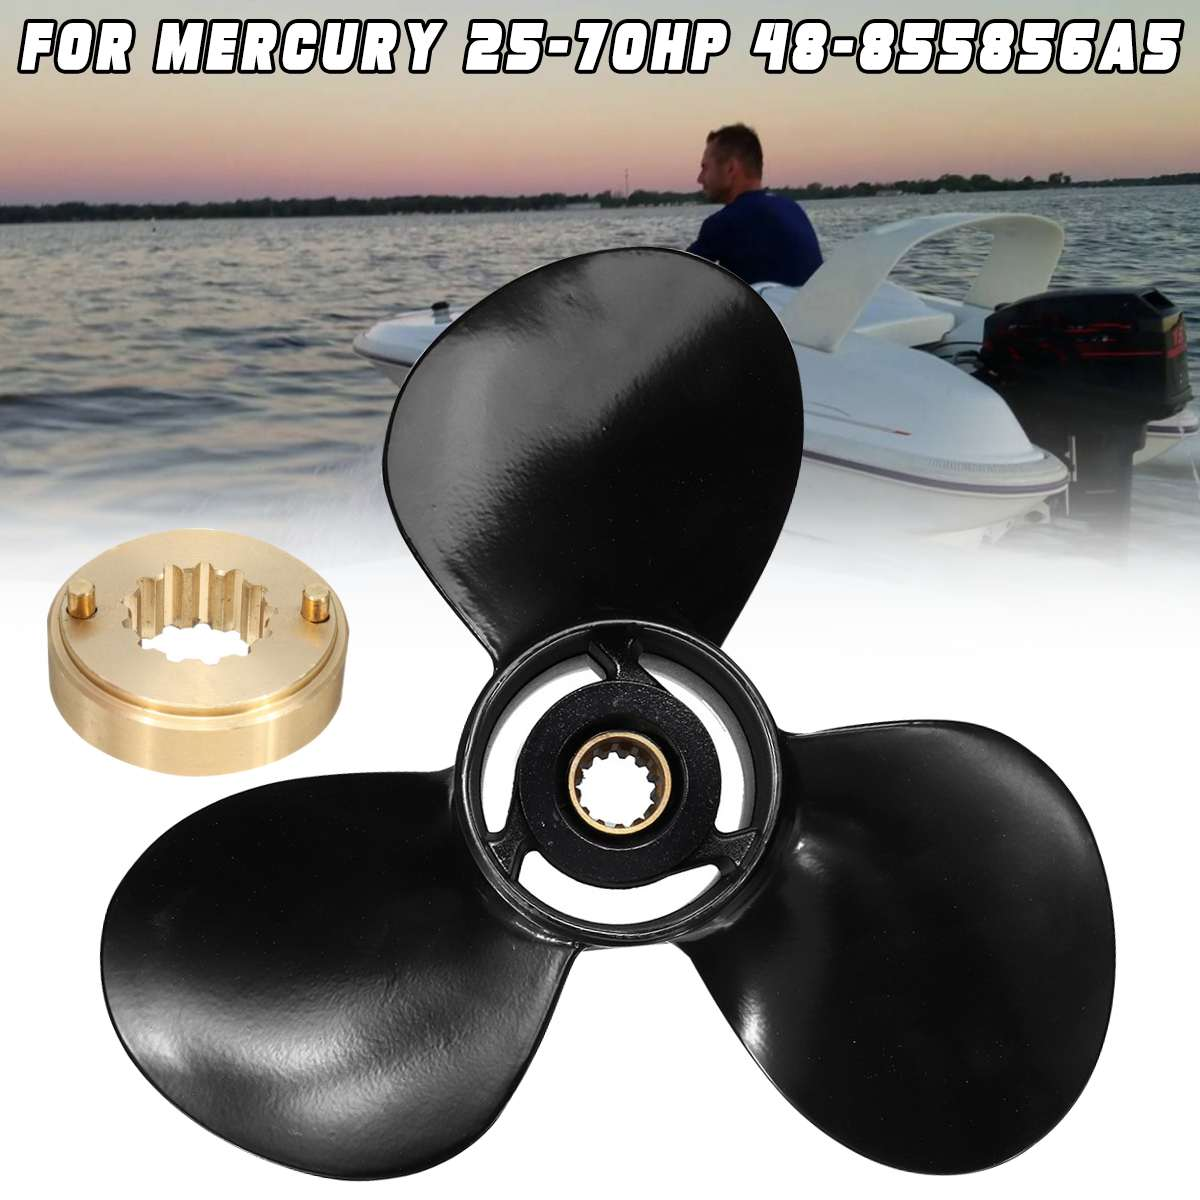 14X11 P Aluminum Outboard Propeller For Mercury 40-140HP 48-77338A45